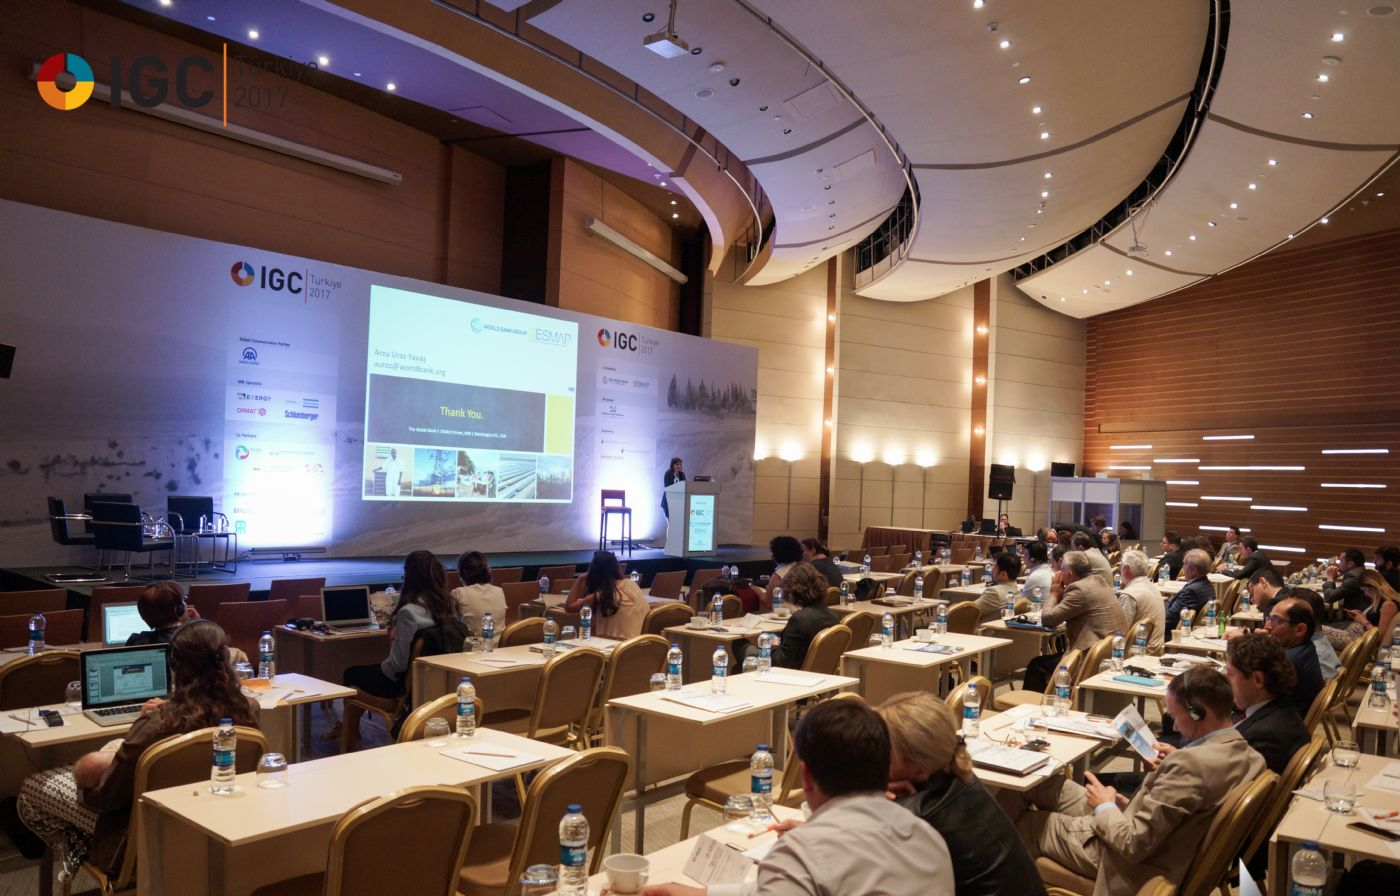 IGC Turkey brings together the geothermal industry in Ankara